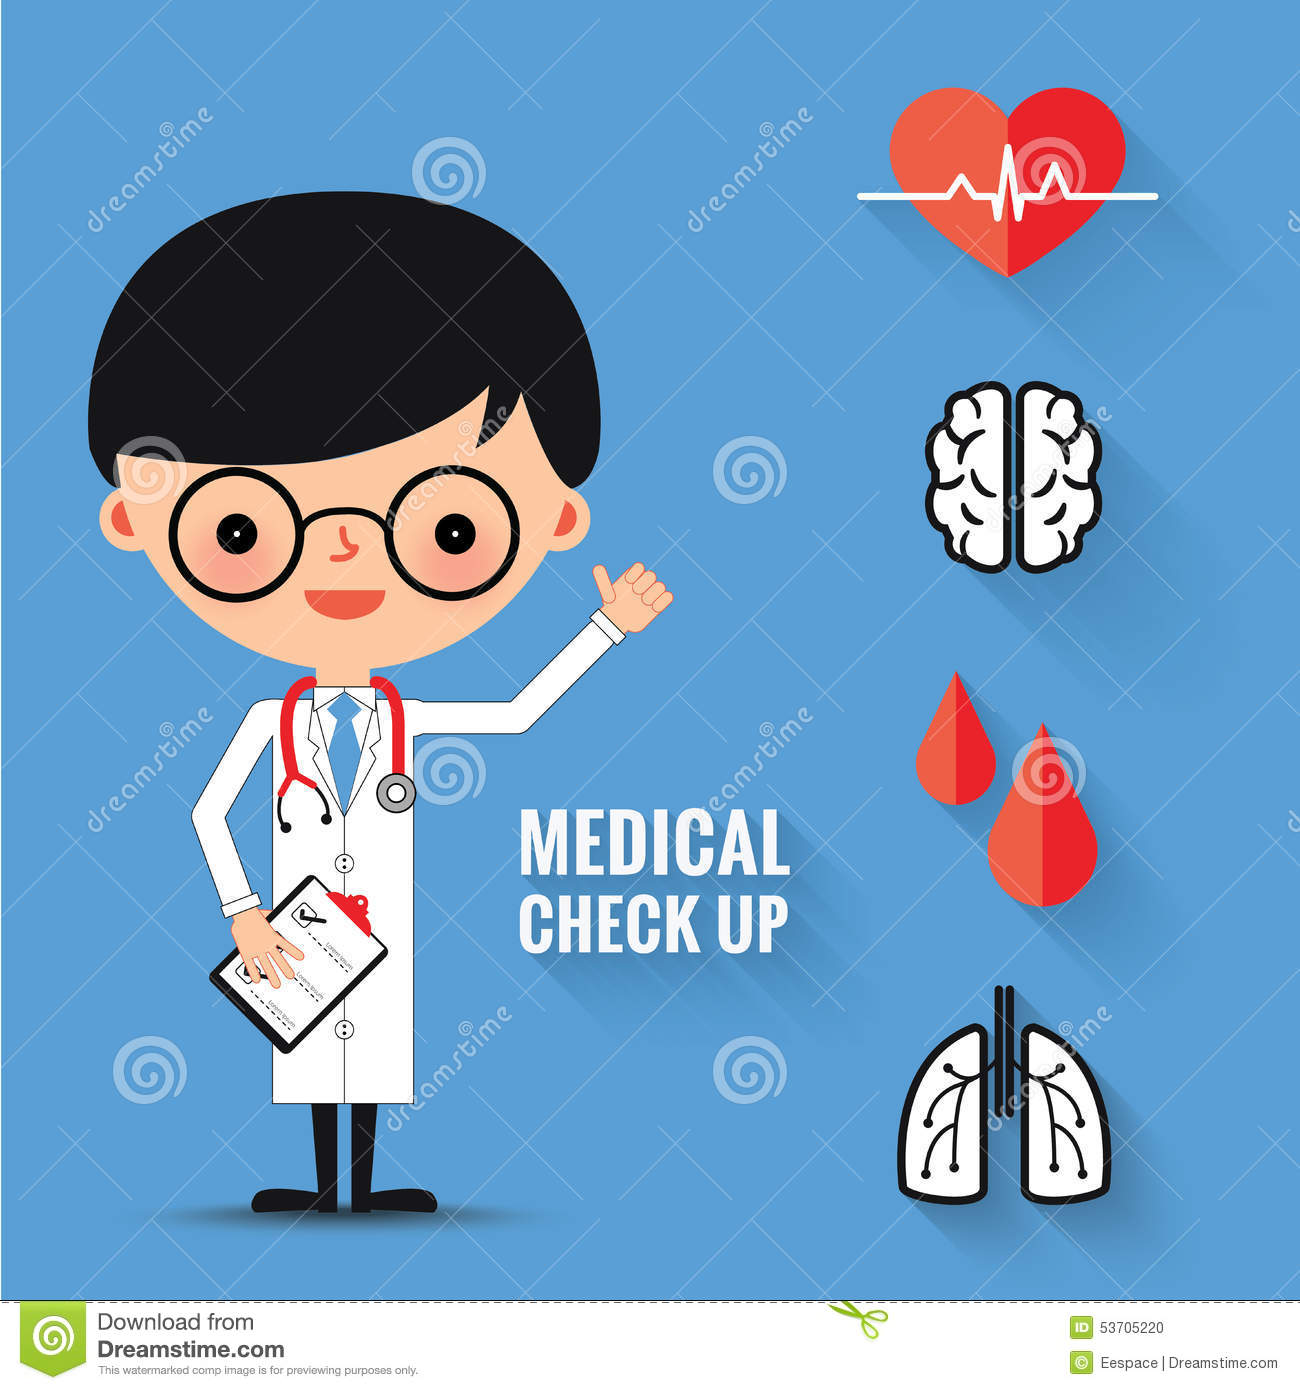 Medical Check Up With Man Doctor Characters. Stock Vector ...